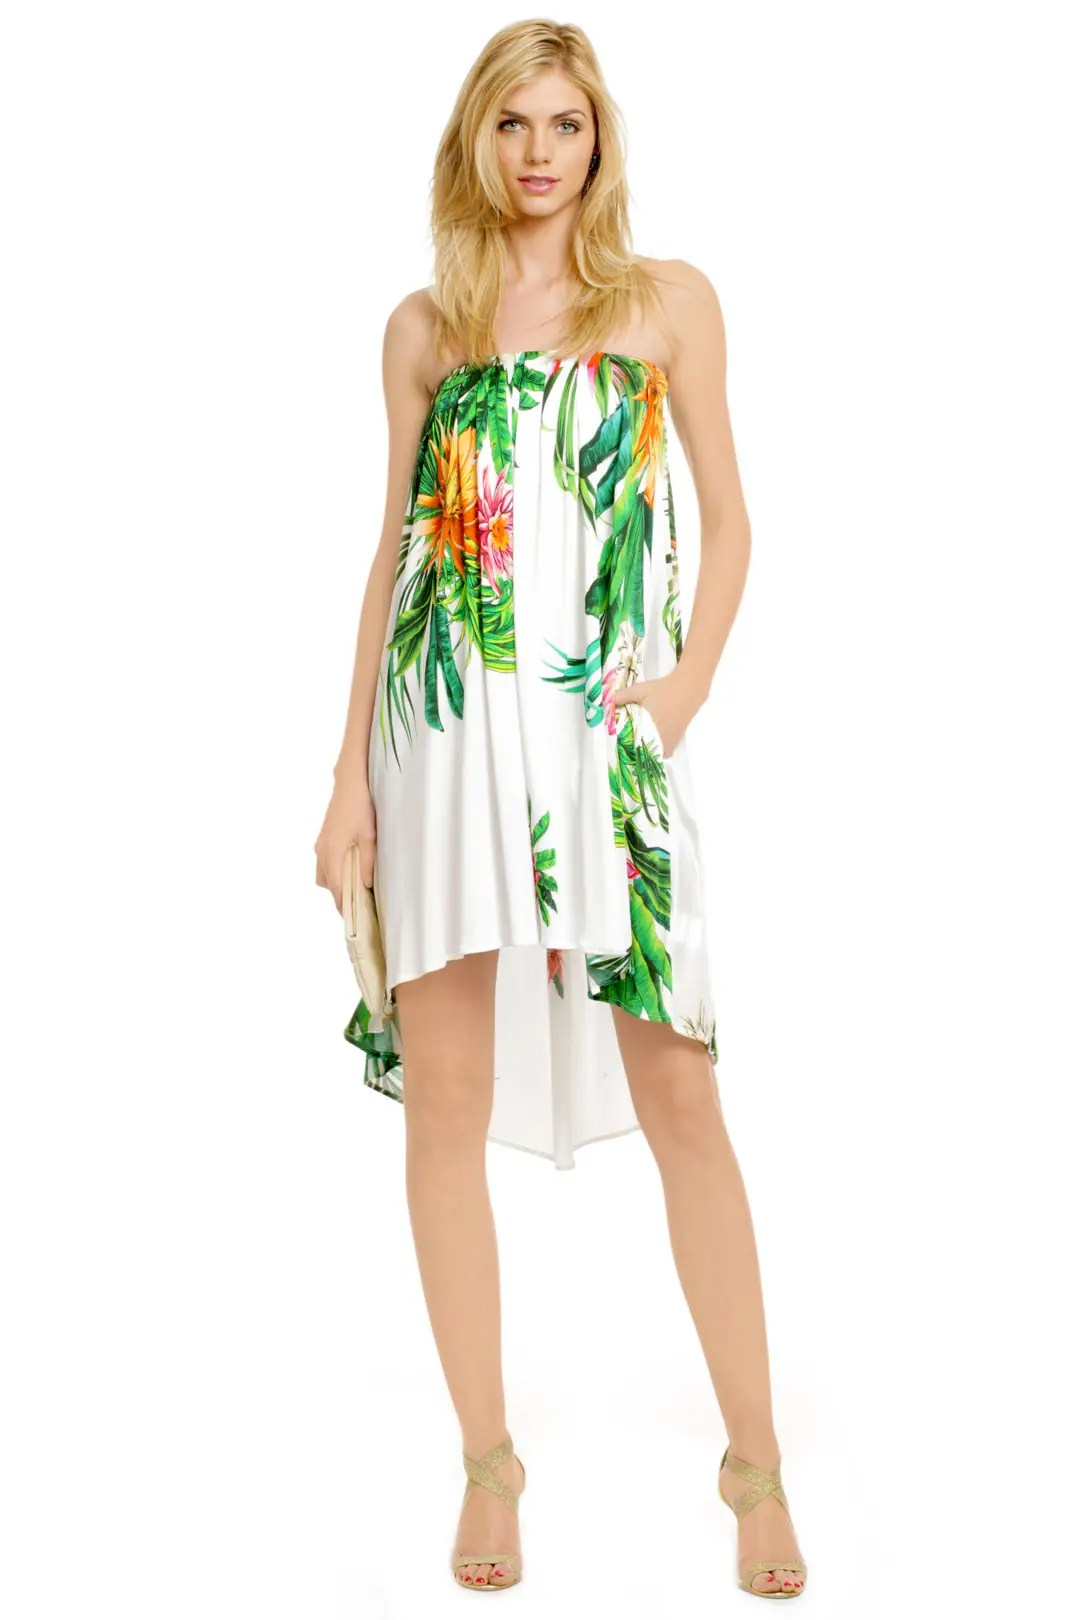 Under The Hawaiian Palms Dress By Msgm For 97